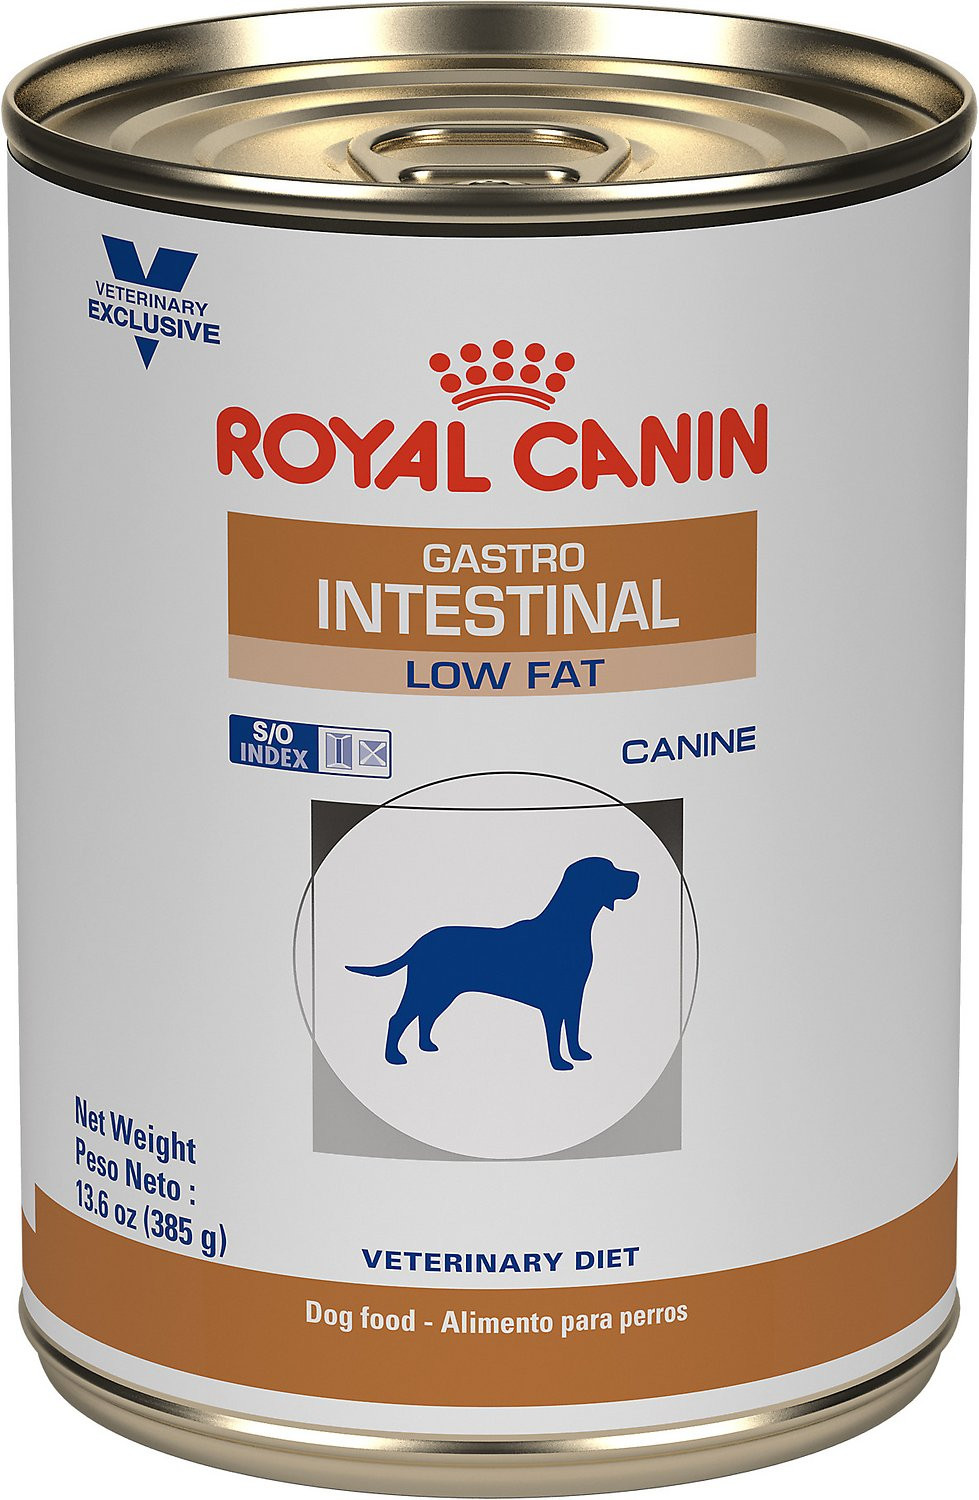 Low Fat Diet For Dogs  Royal Canin Veterinary Diet Gastrointestinal Low Fat